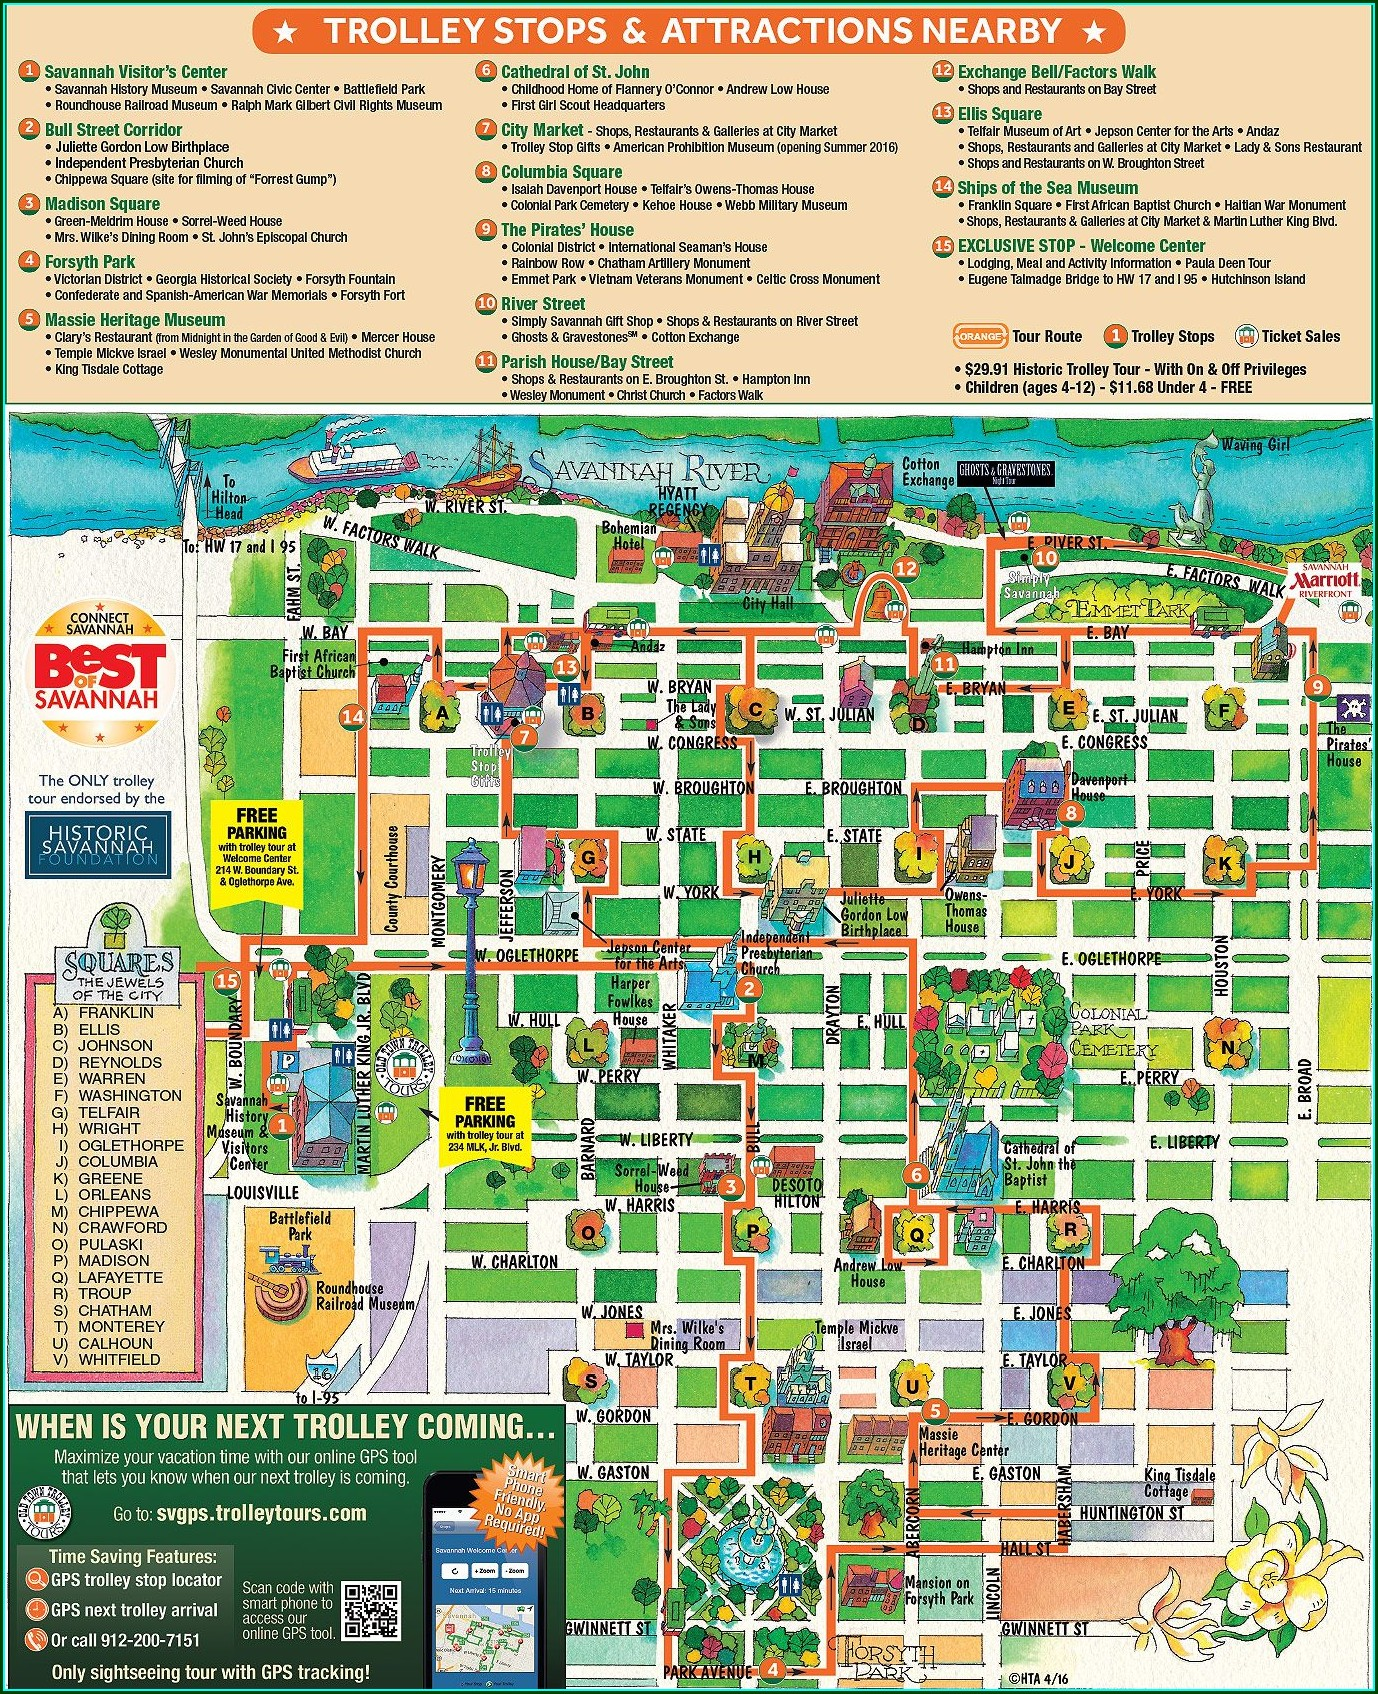 Savannah Trolley Tour Map